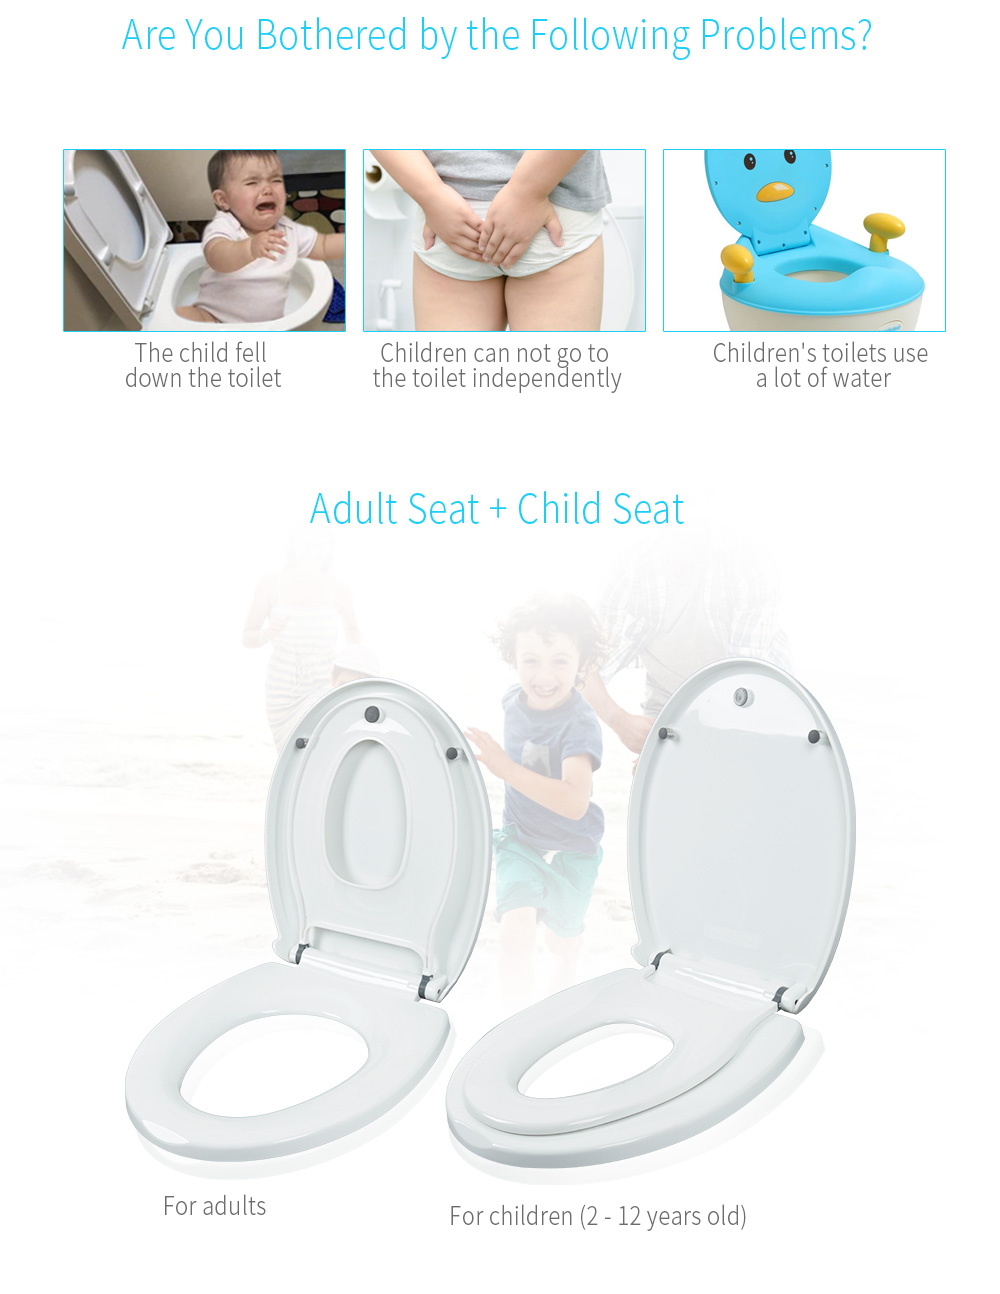 Superb Household Round Adult Toilet Seat With Child Potty Training Cover Pp Material Double Seats Safe Convenient For Adult Children Caraccident5 Cool Chair Designs And Ideas Caraccident5Info